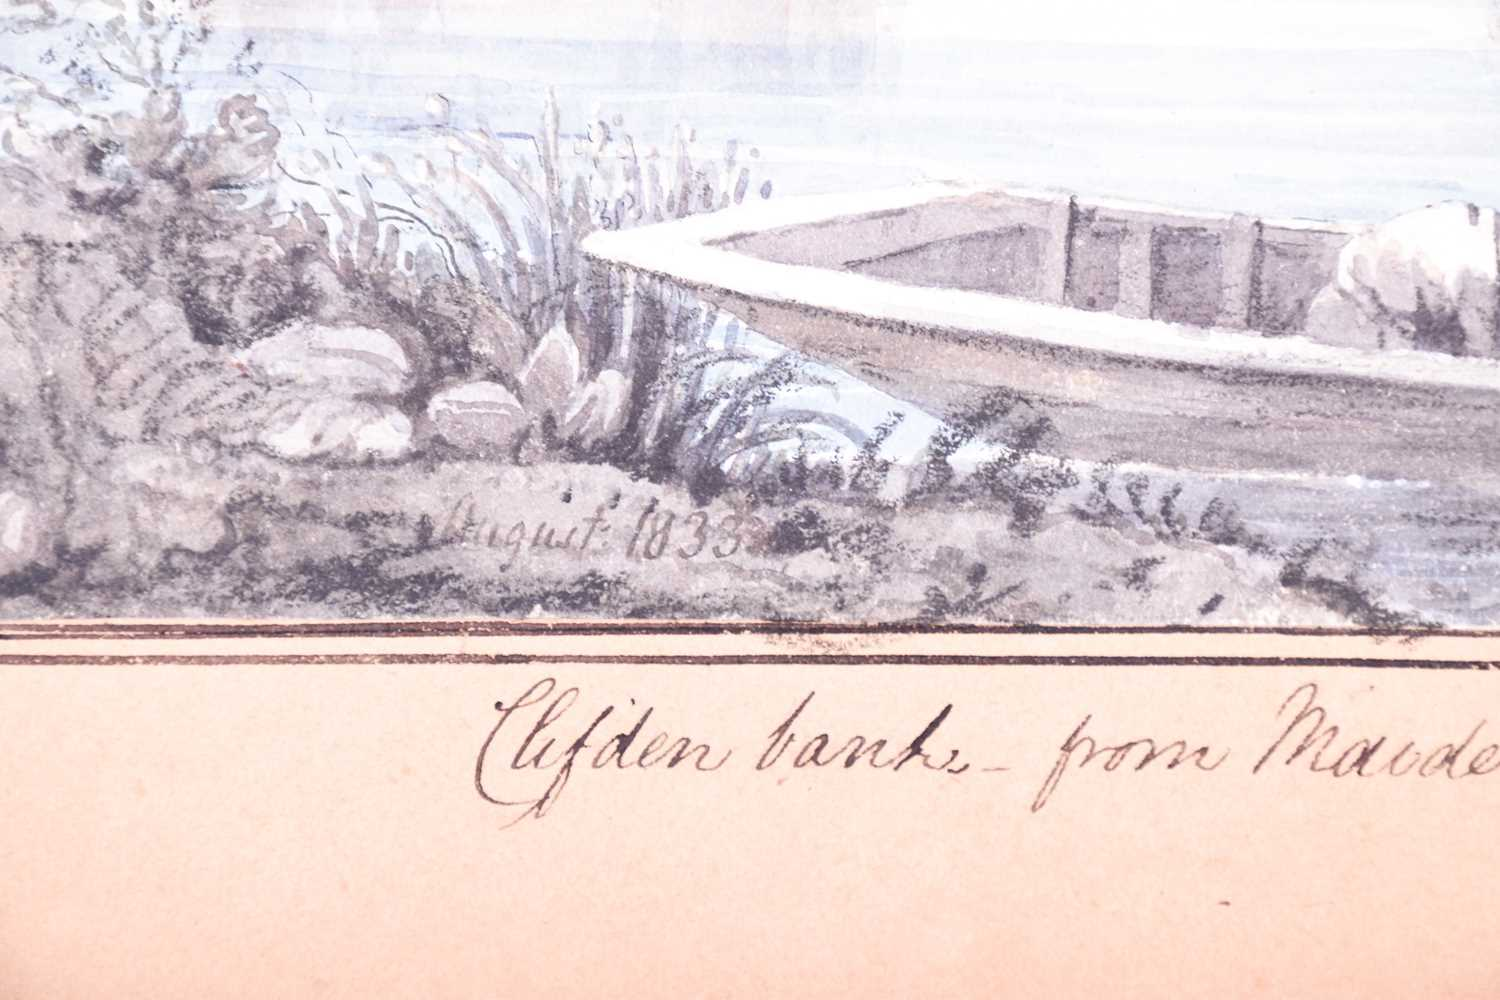 19th century English School, ' Clifden bank from Maidenhead Bridge', dated August 1833, watercolour, - Image 3 of 4